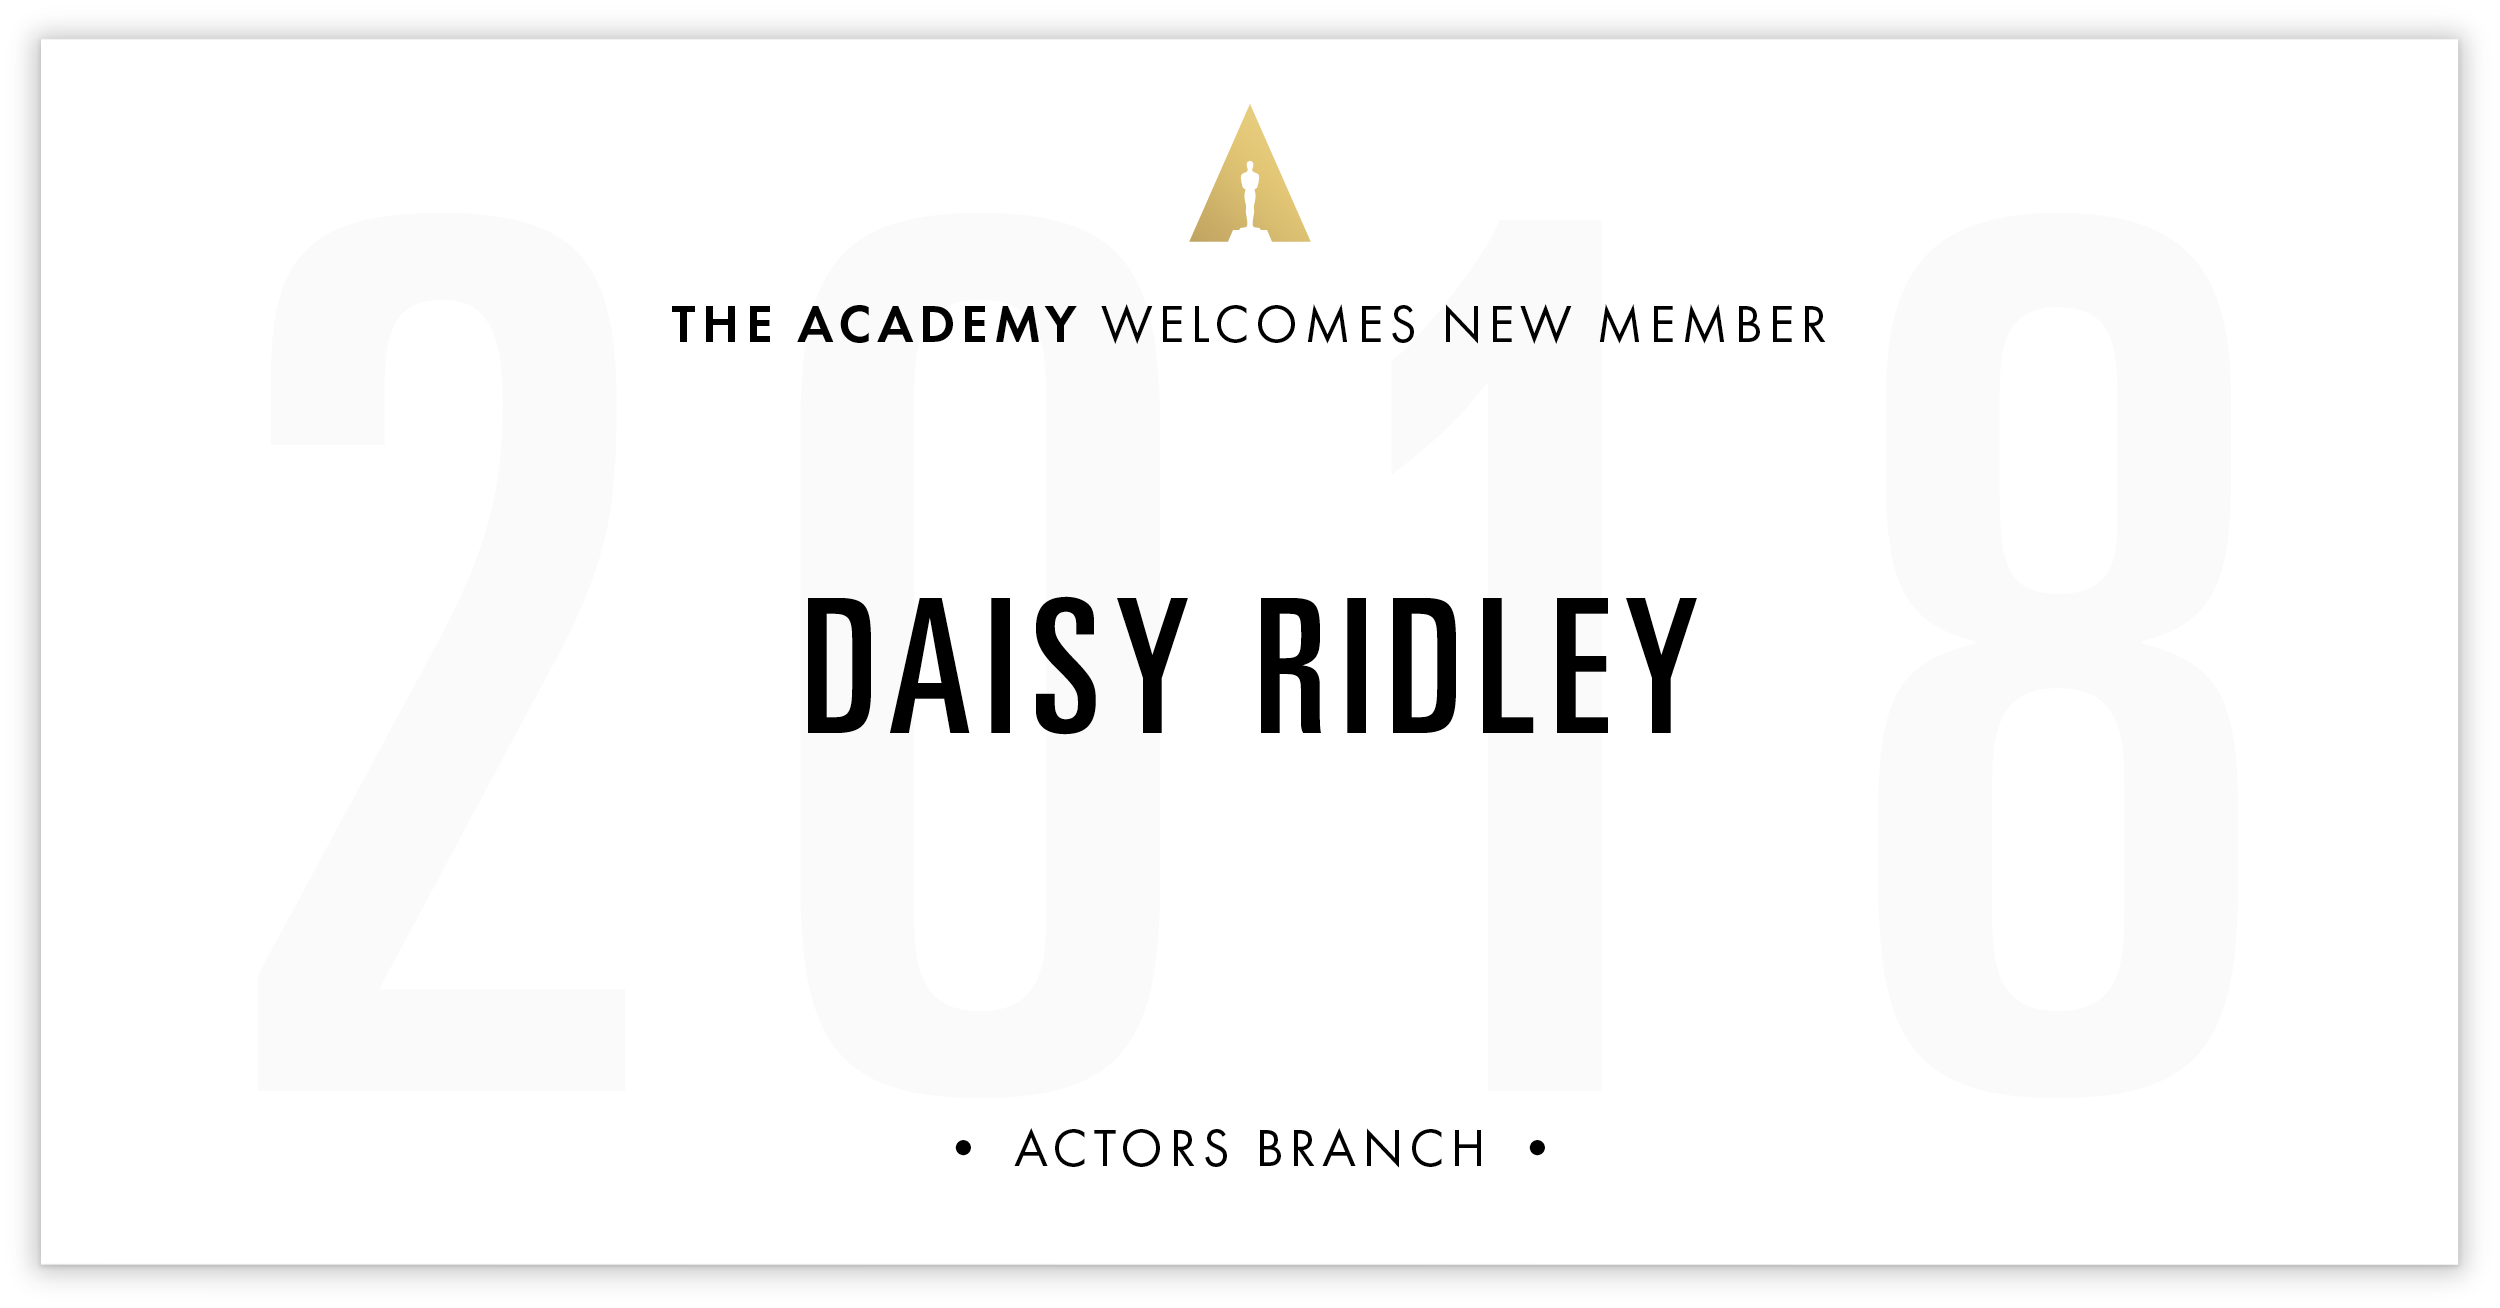 Daisy Ridley is invited!